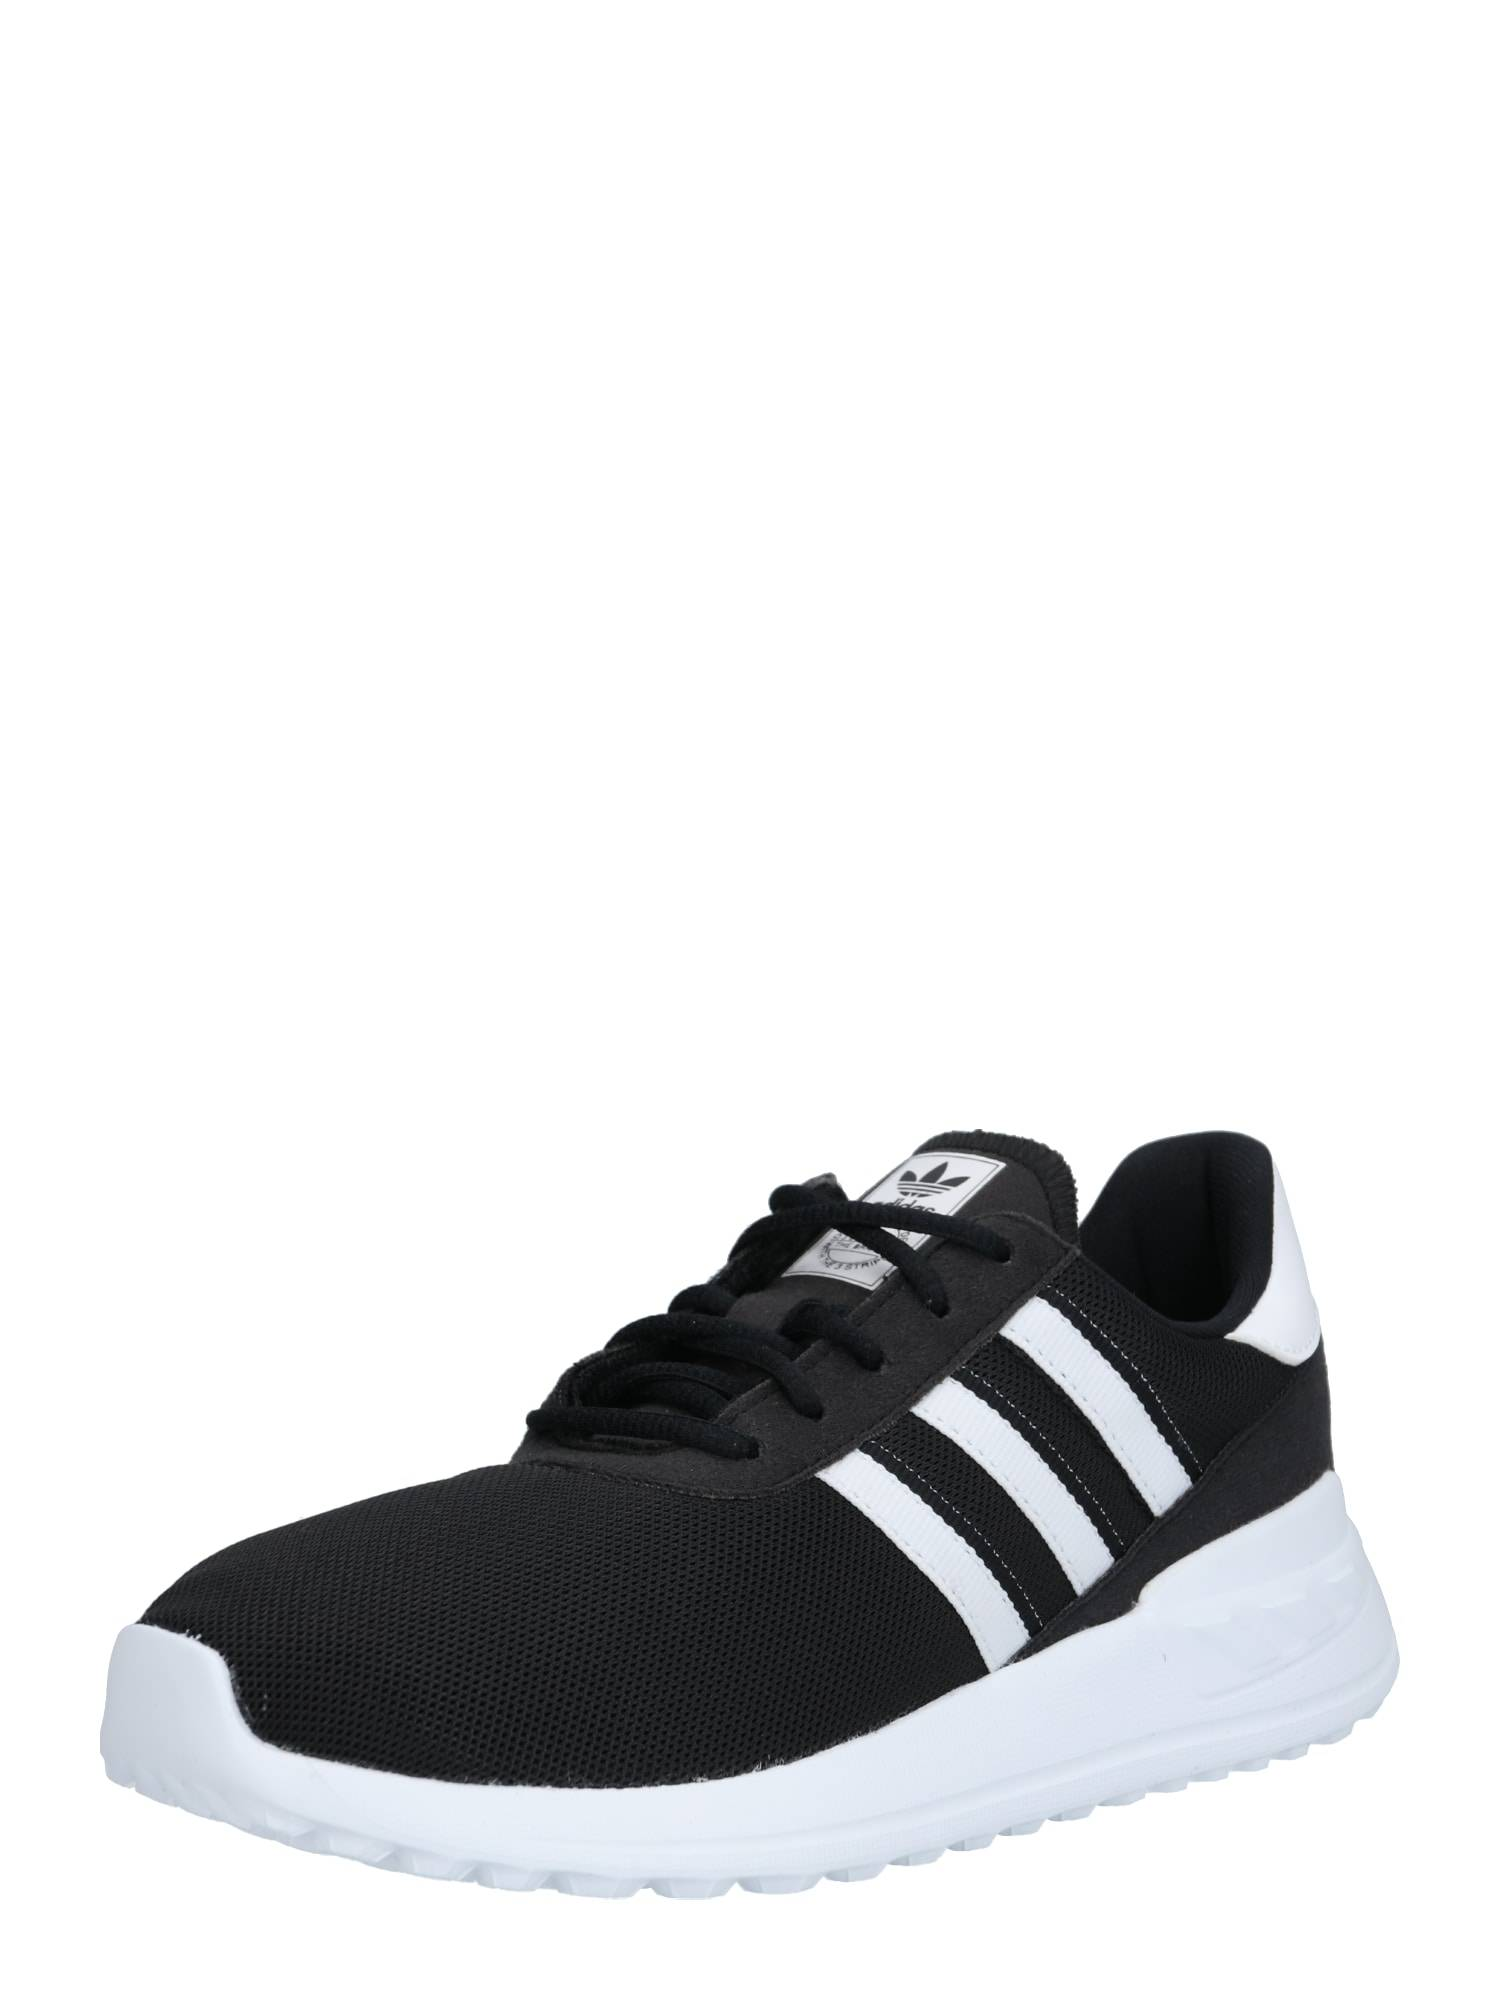 ADIDAS ORIGINALS Baskets 'La Trainer Lite'  - Noir - Taille: 30.5 - boy